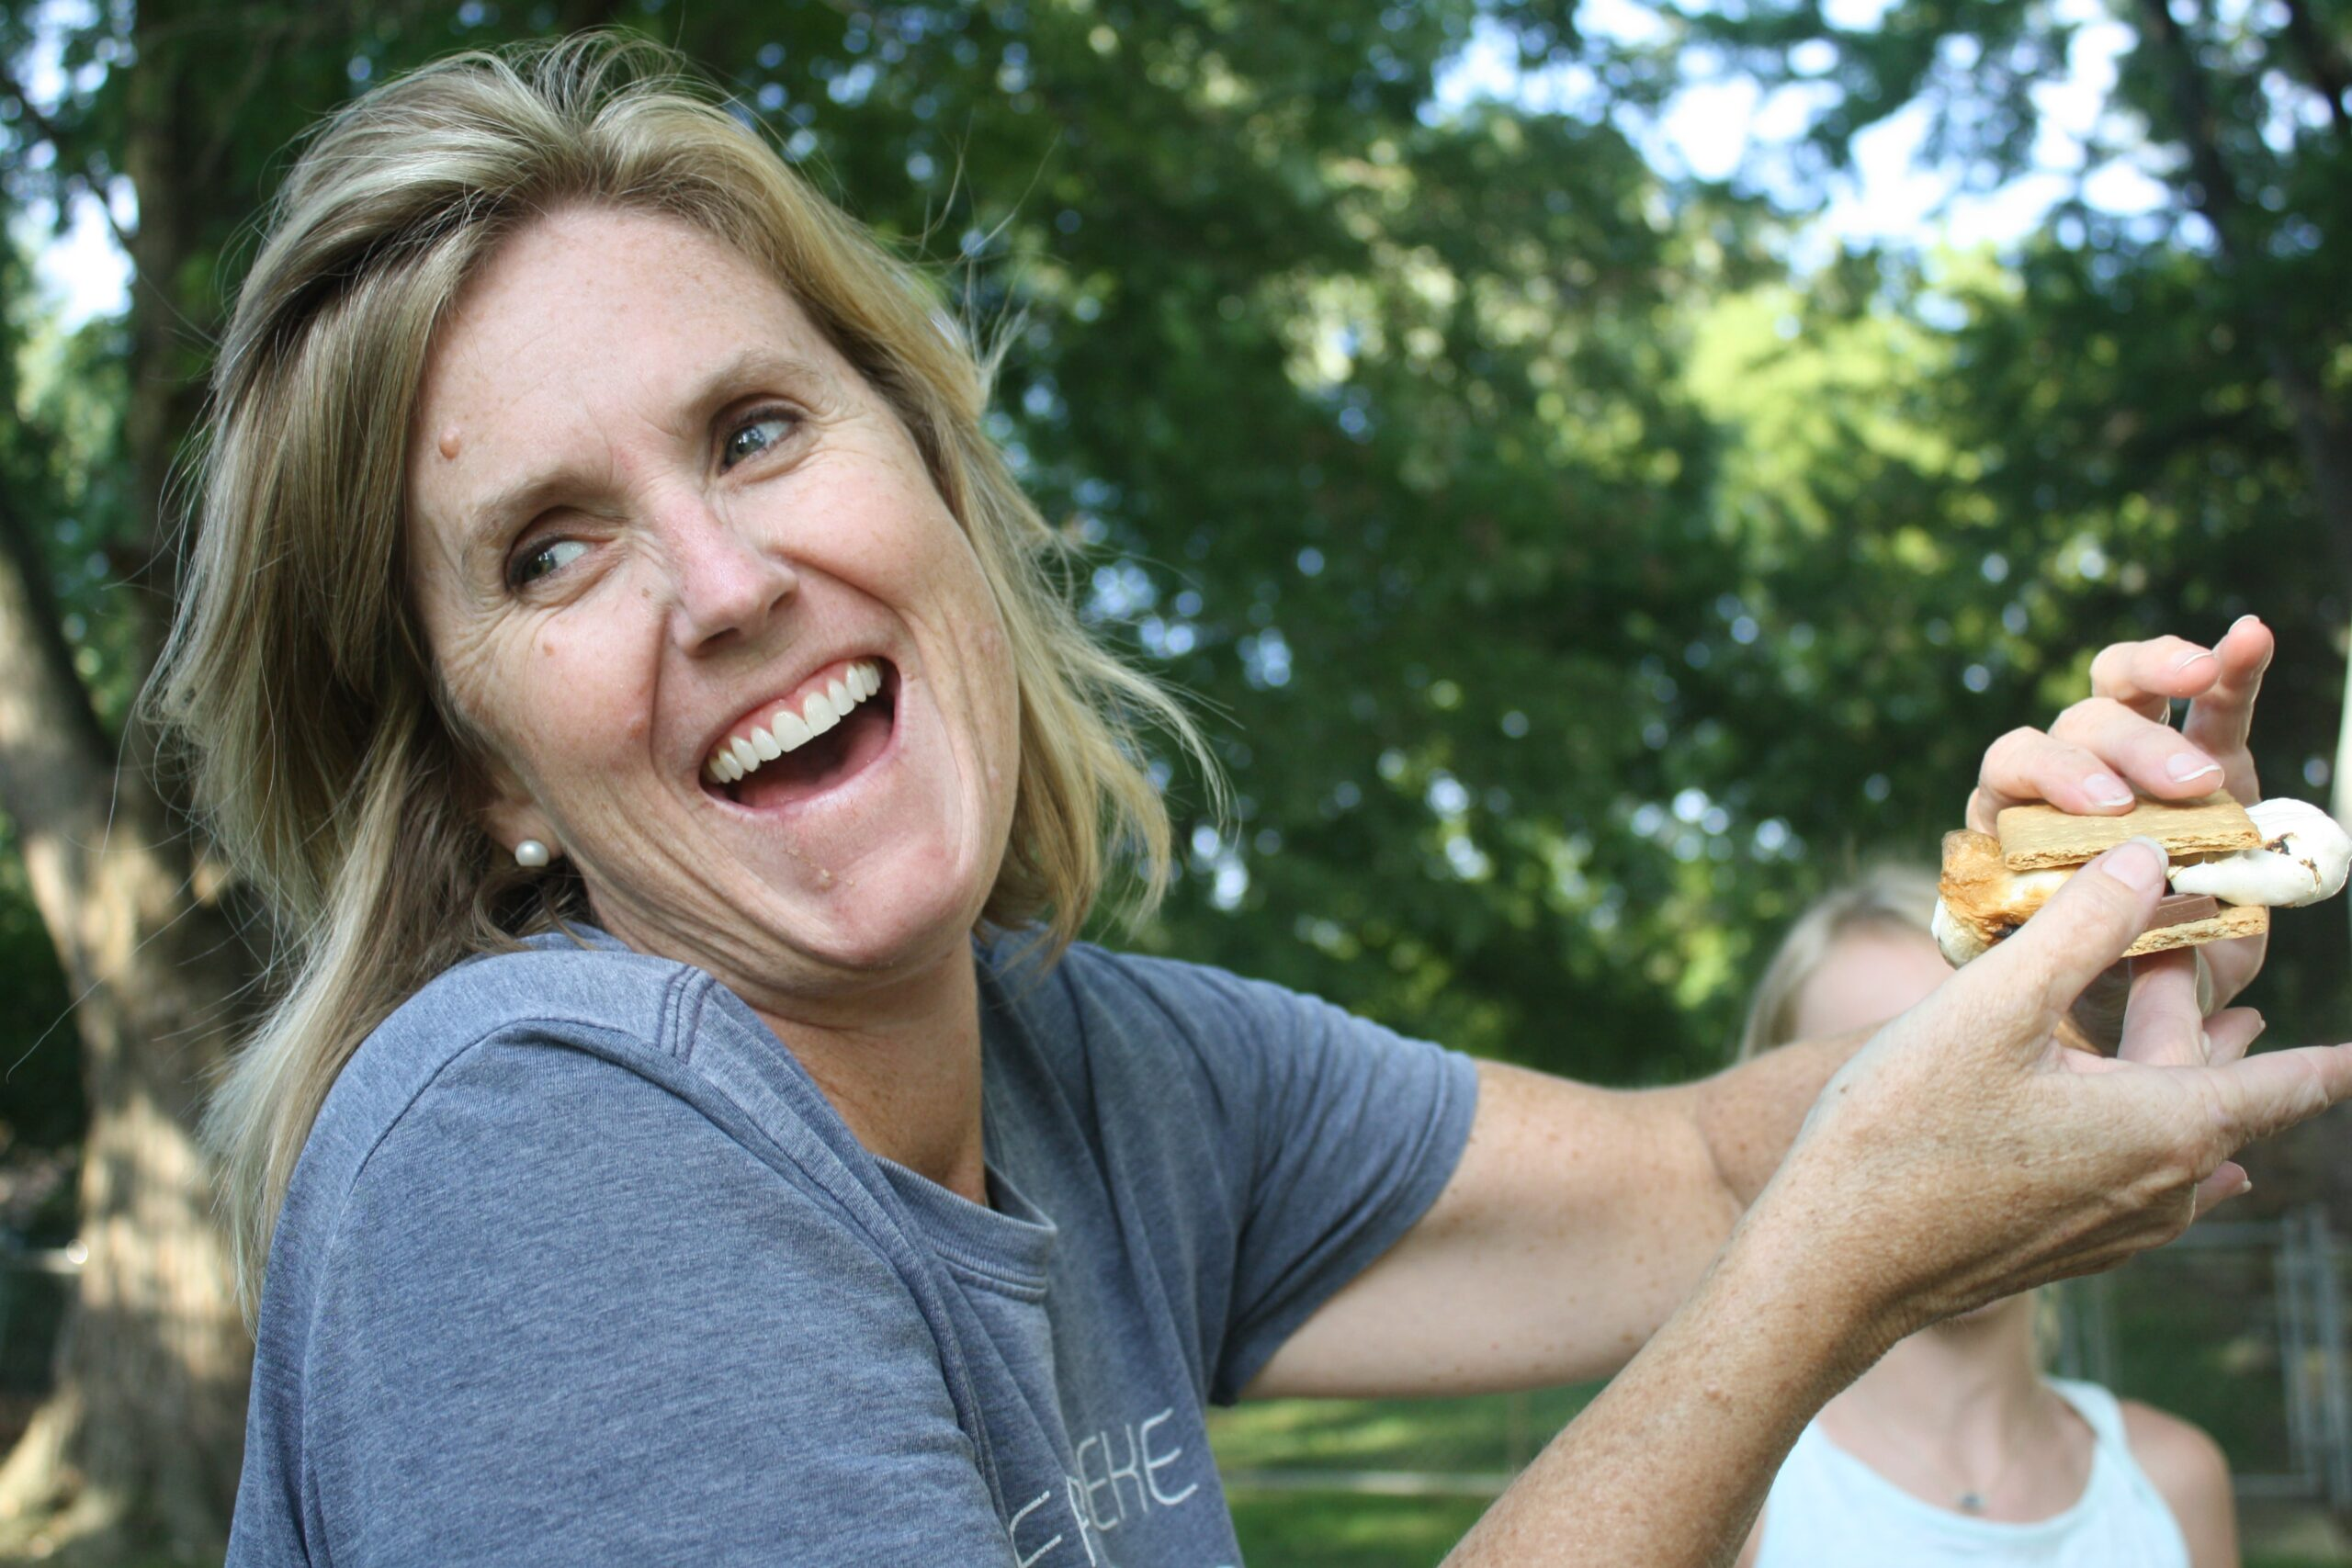 Woman laughing as she struggles with holding a s'more.